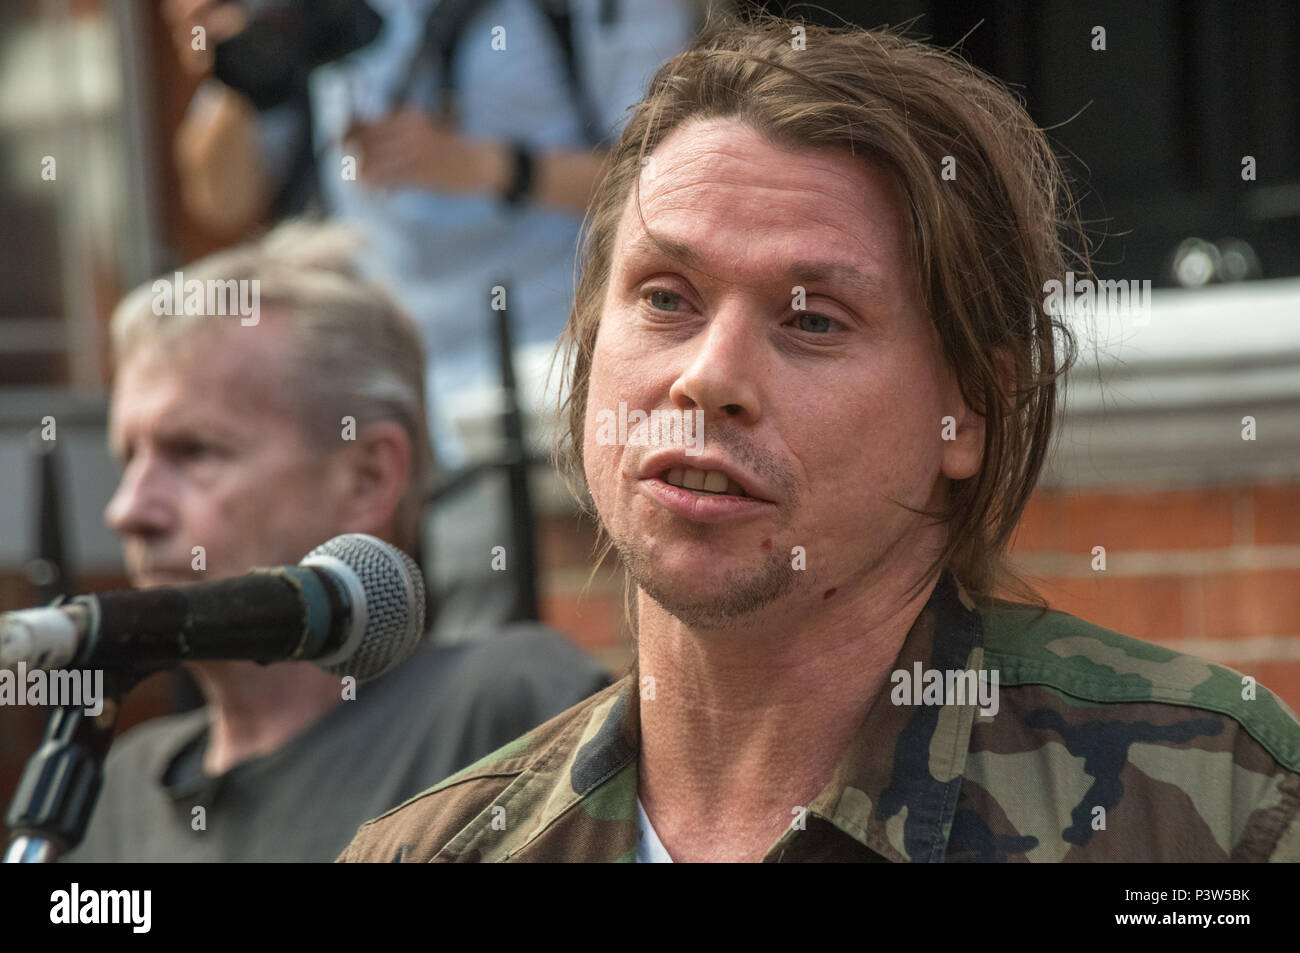 London, UK. 19th June 2018. Lauri Love who succesfully fought extradition to the USA speaks at the rally outside the Ecuadorian Embassy in London calling for Julian Assange to be allowed safe passage to the place of his choice to mark six years since he was given asylum there. They called for the UK authorities to allow him to leave the embassy and go to the country of his choice without being arrested. Credit: Peter Marshall/Alamy Live News - Stock Image